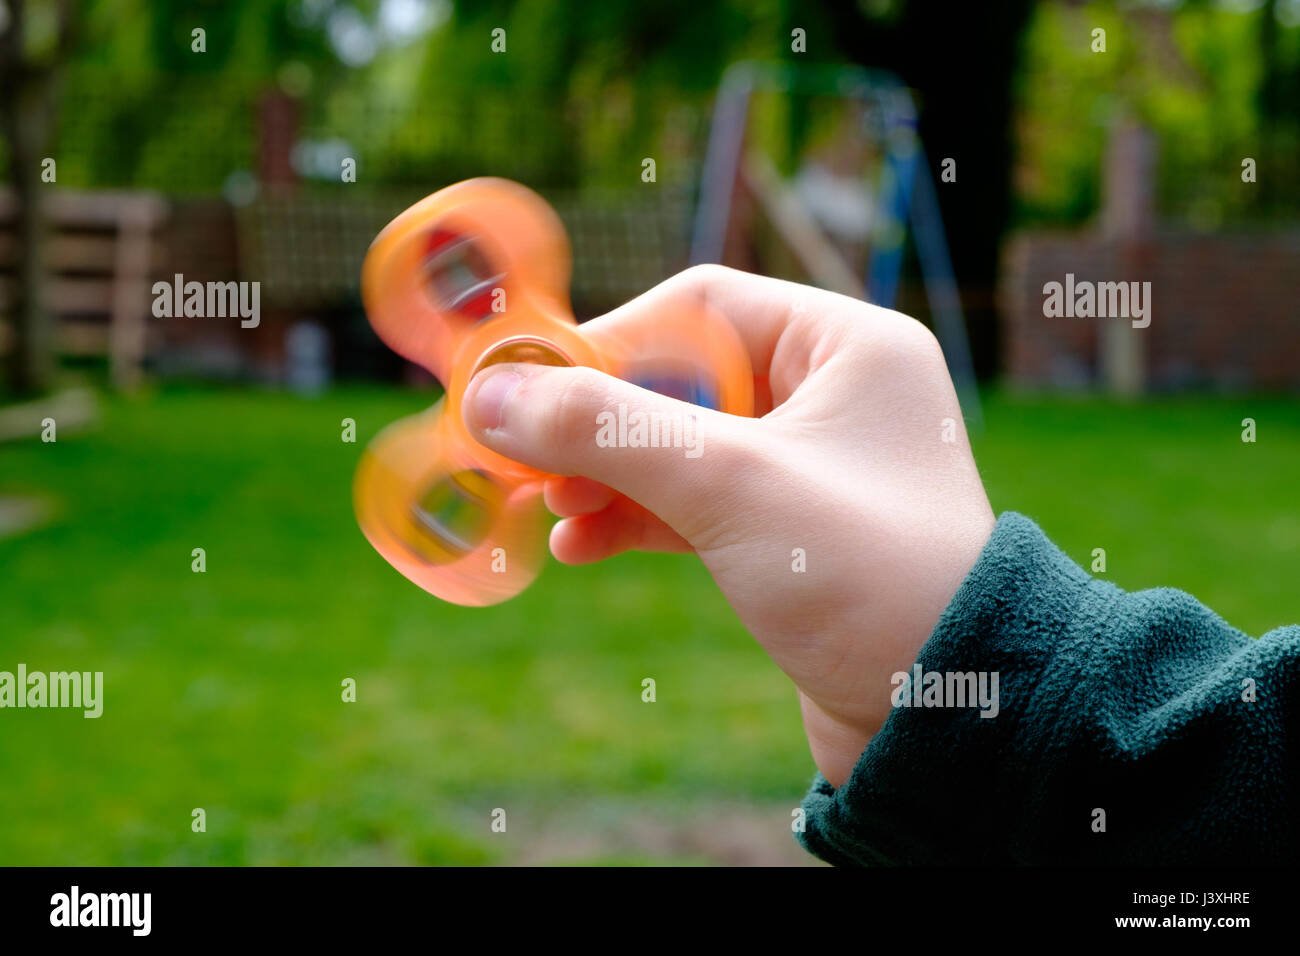 Young boy holding an orange fidget spinner, the latest craze to strike the UK - Stock Image